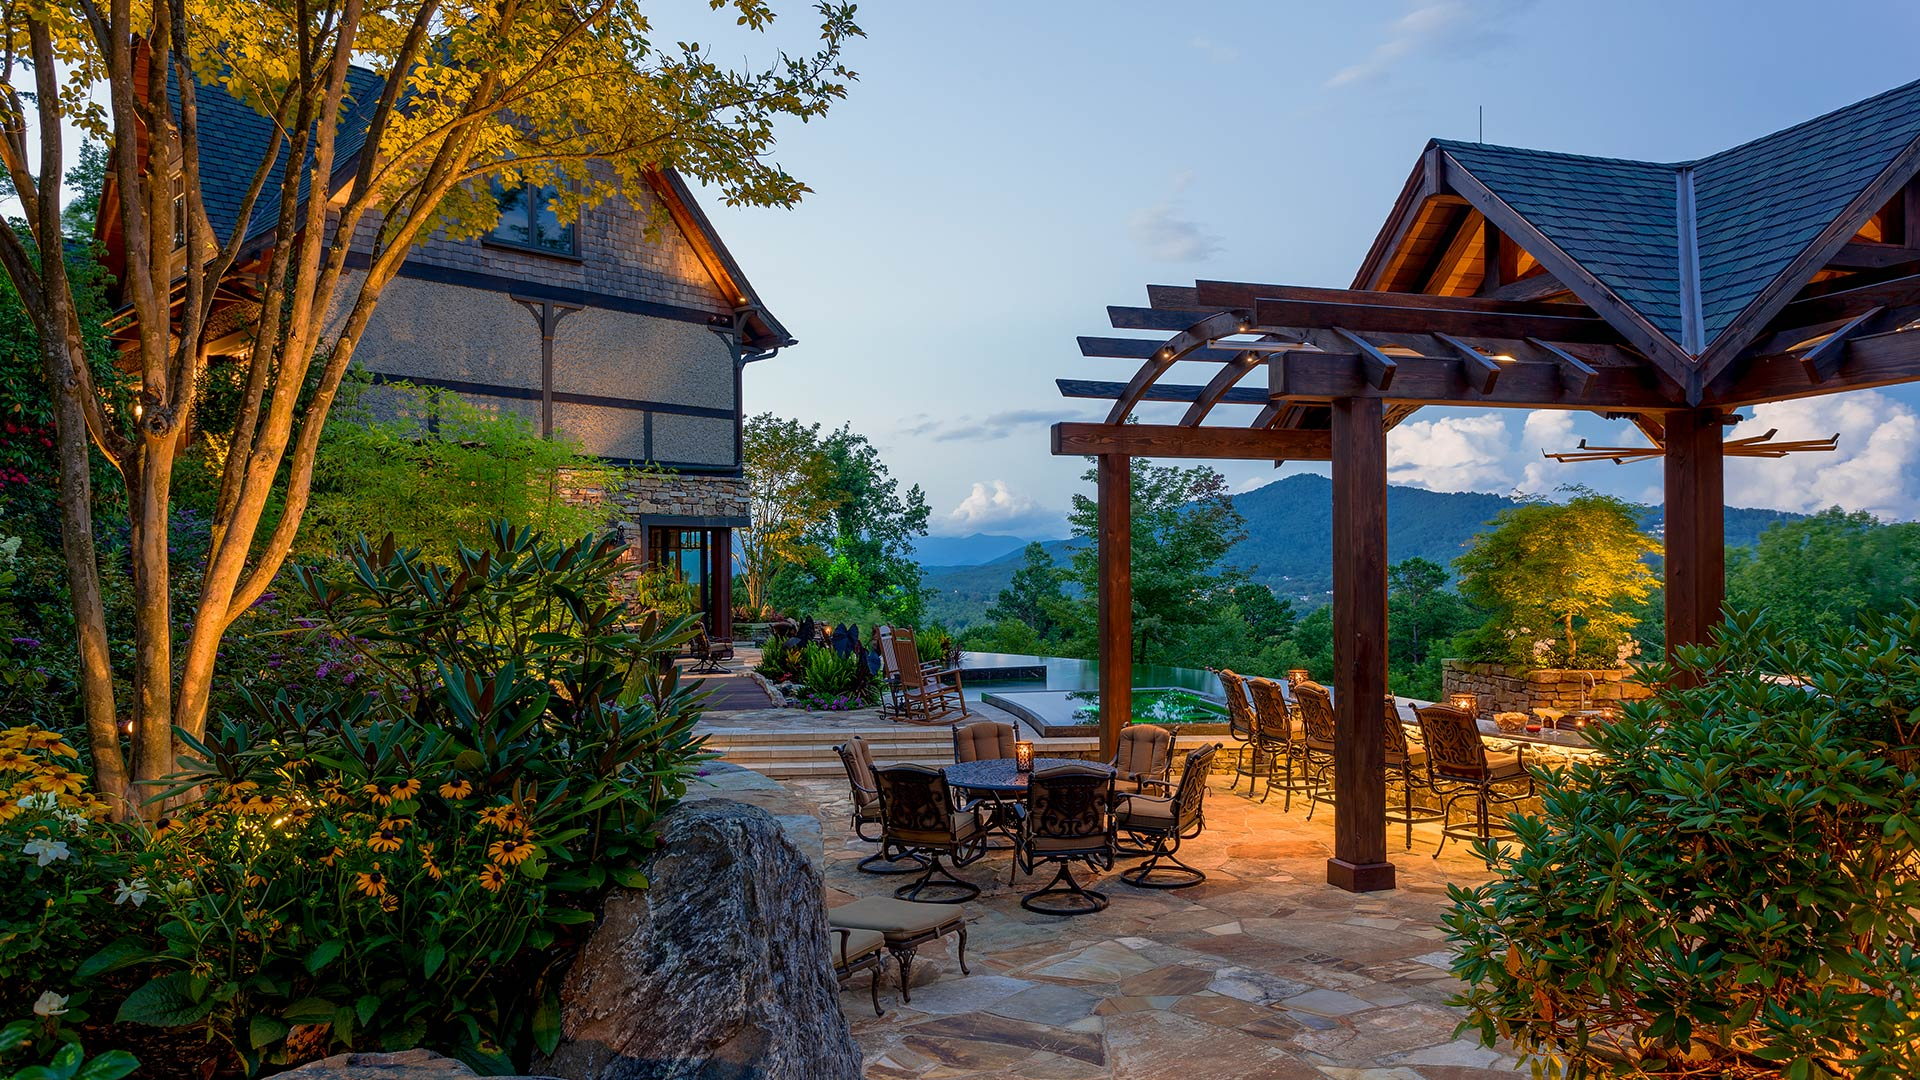 Award Winning Outdoor Living Design by Asheville Mountain Home Architects at ACM Design